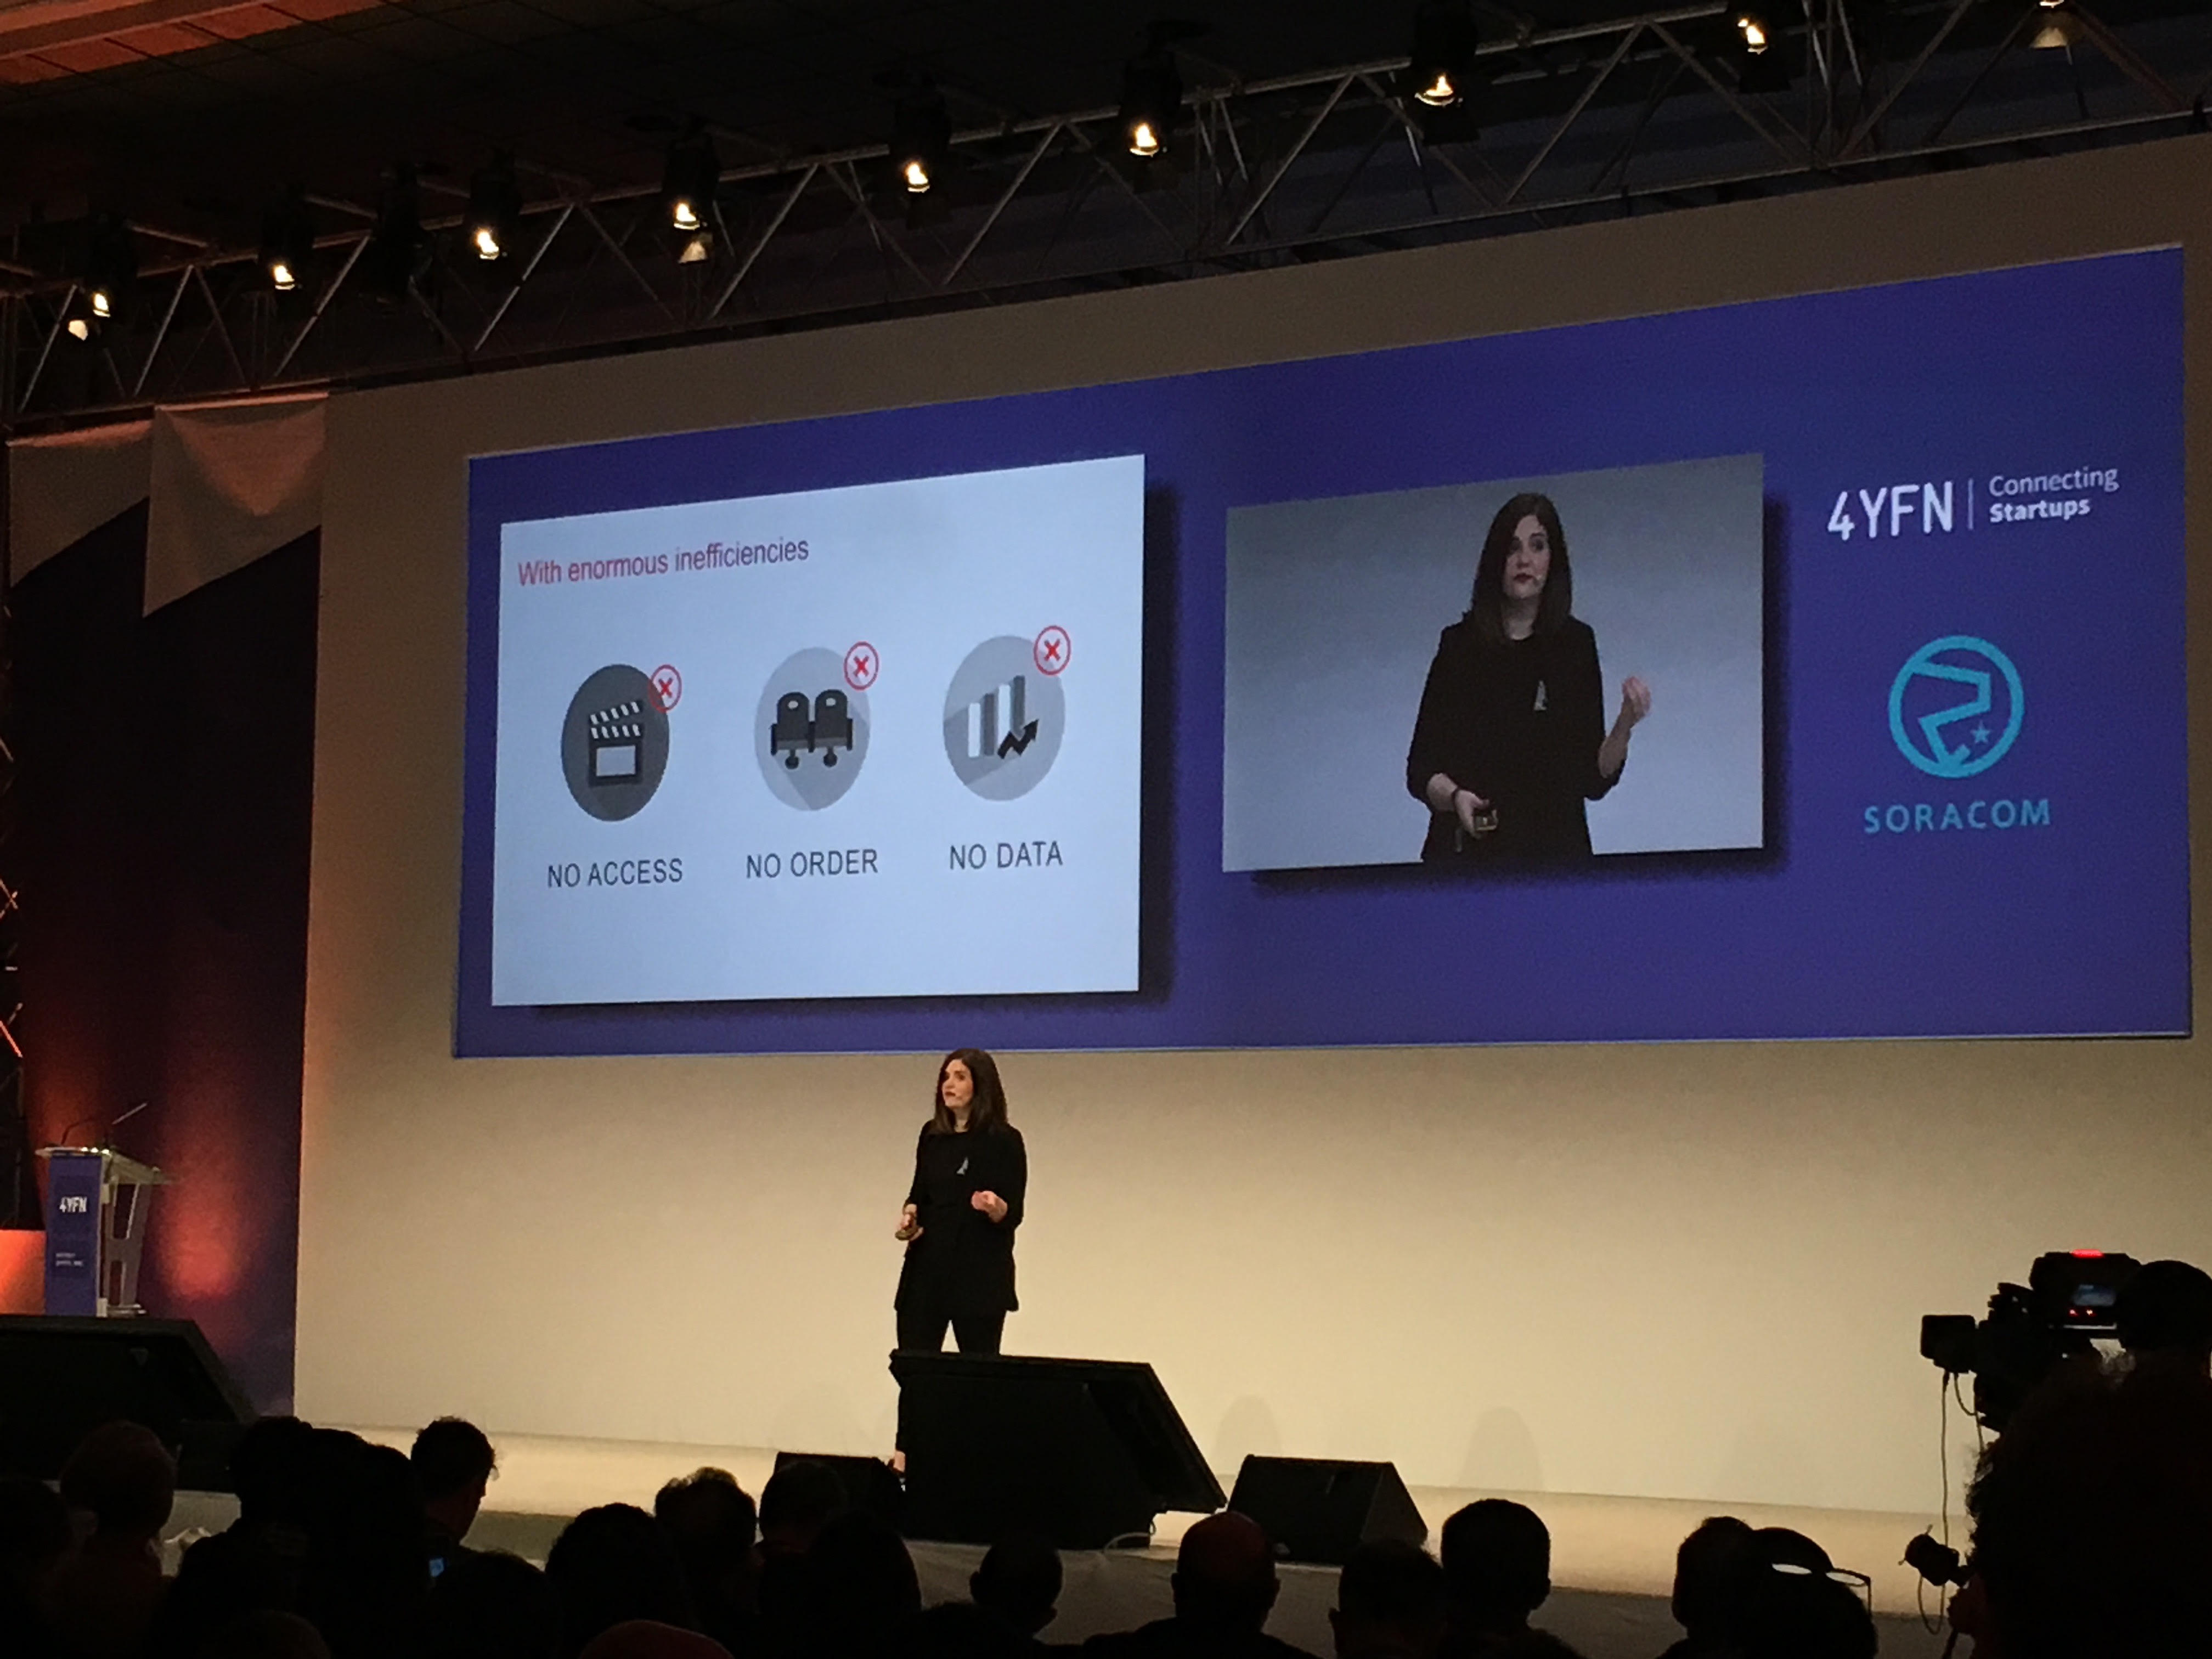 Andrea Giannone, Co-founder and CEO of Barcelona startup Filmarket Hub pitching at NUMA Barcelona demo day 4YFN 2017